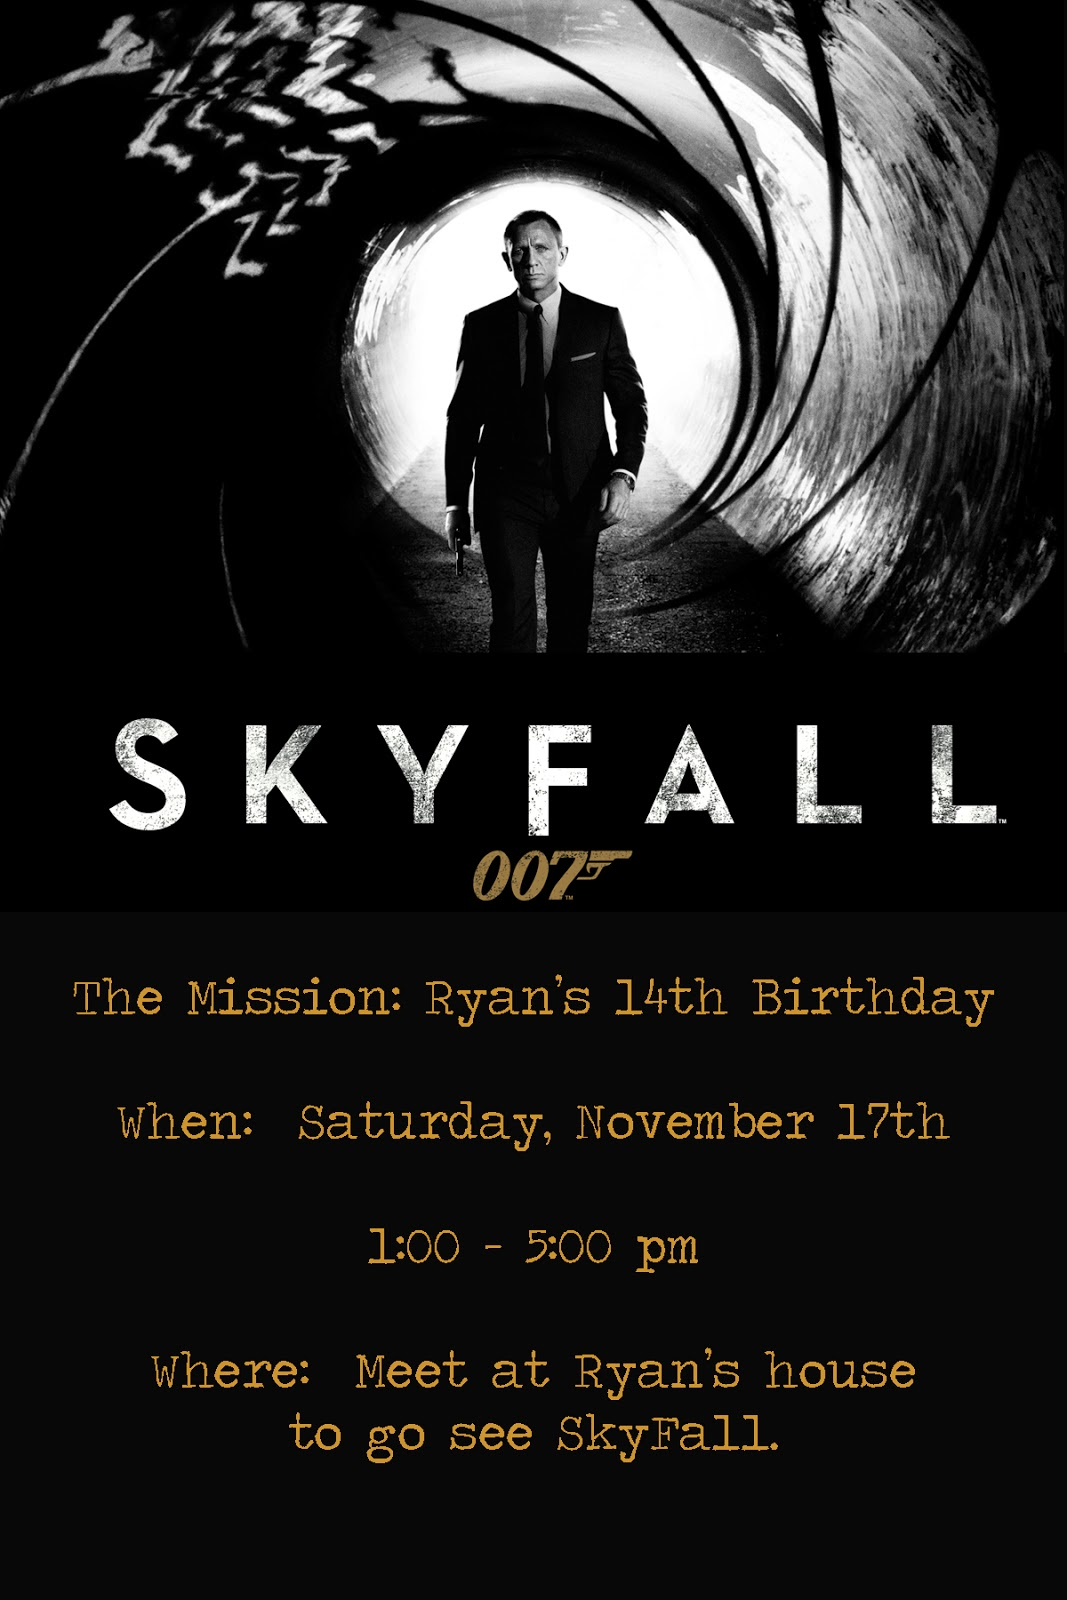 The Seal Bark: sKyfAlL biRthdAy pArTy